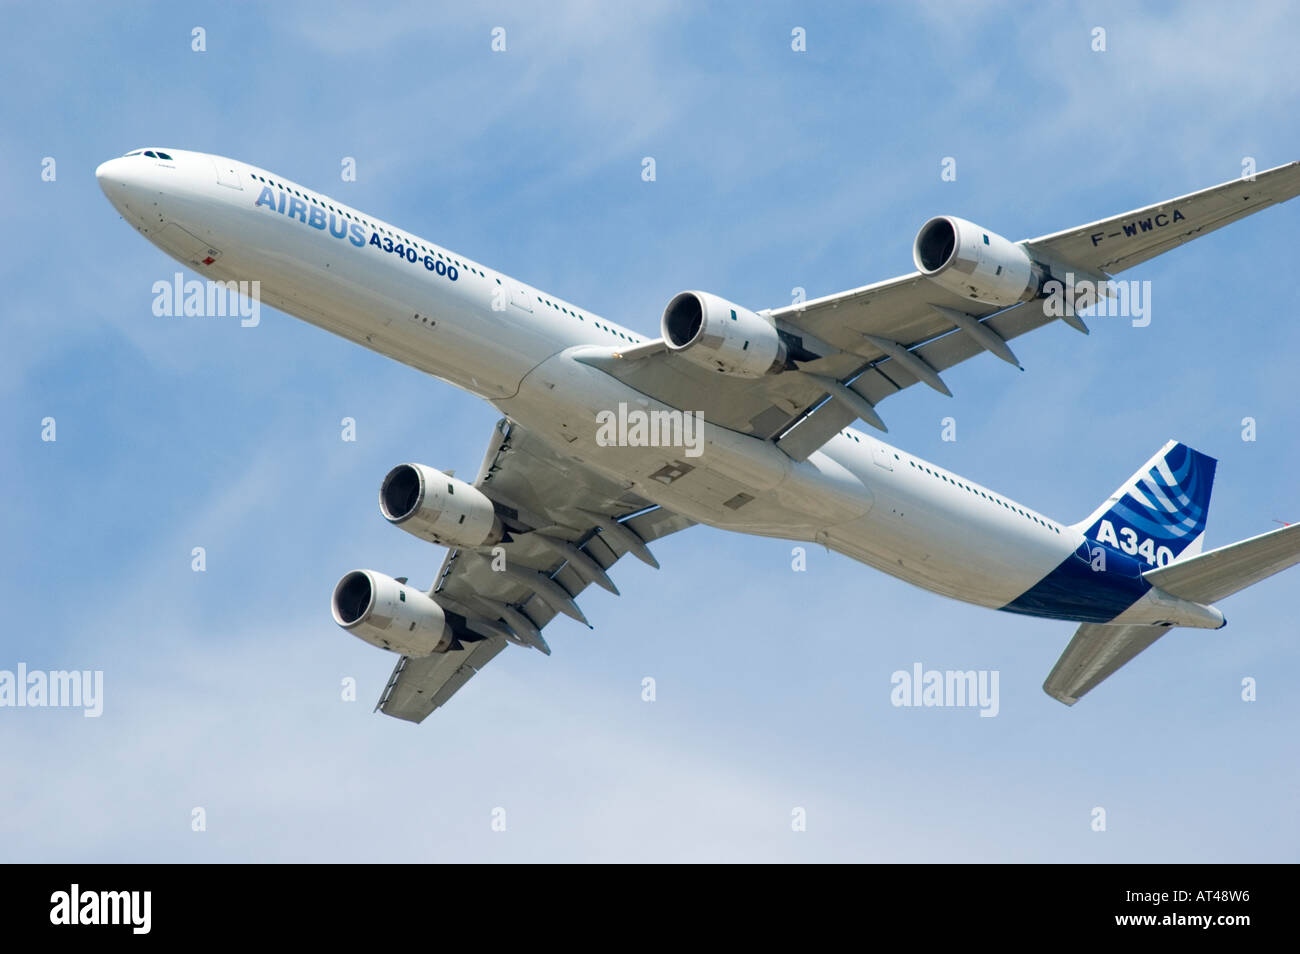 The Airbus A340-600 flying at the 2006 Farnborough International Airshow, United Kingdom. - Stock Image